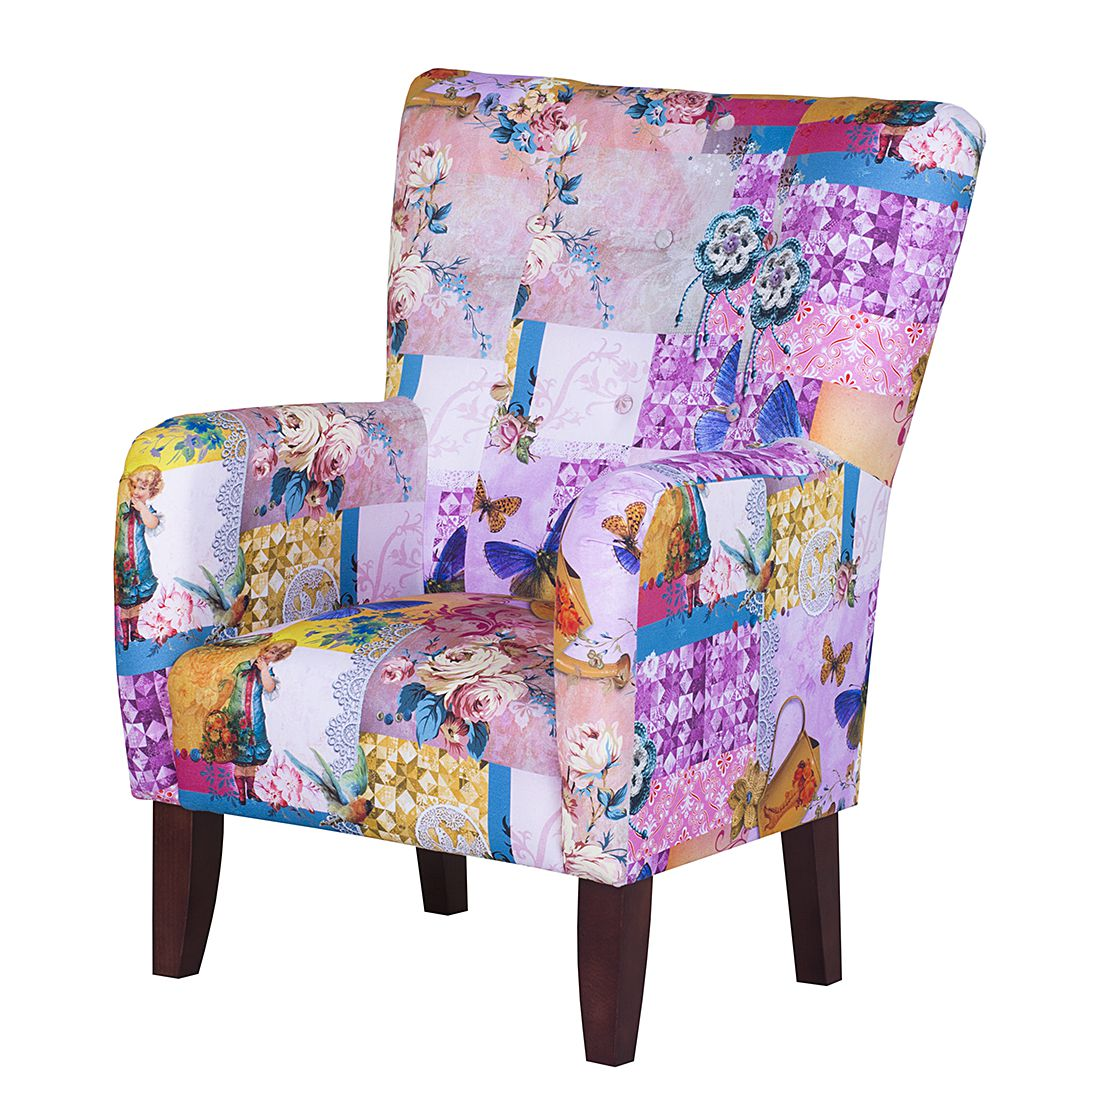 Home 24 - Fauteuil karla - tissu - violet, jack and alice